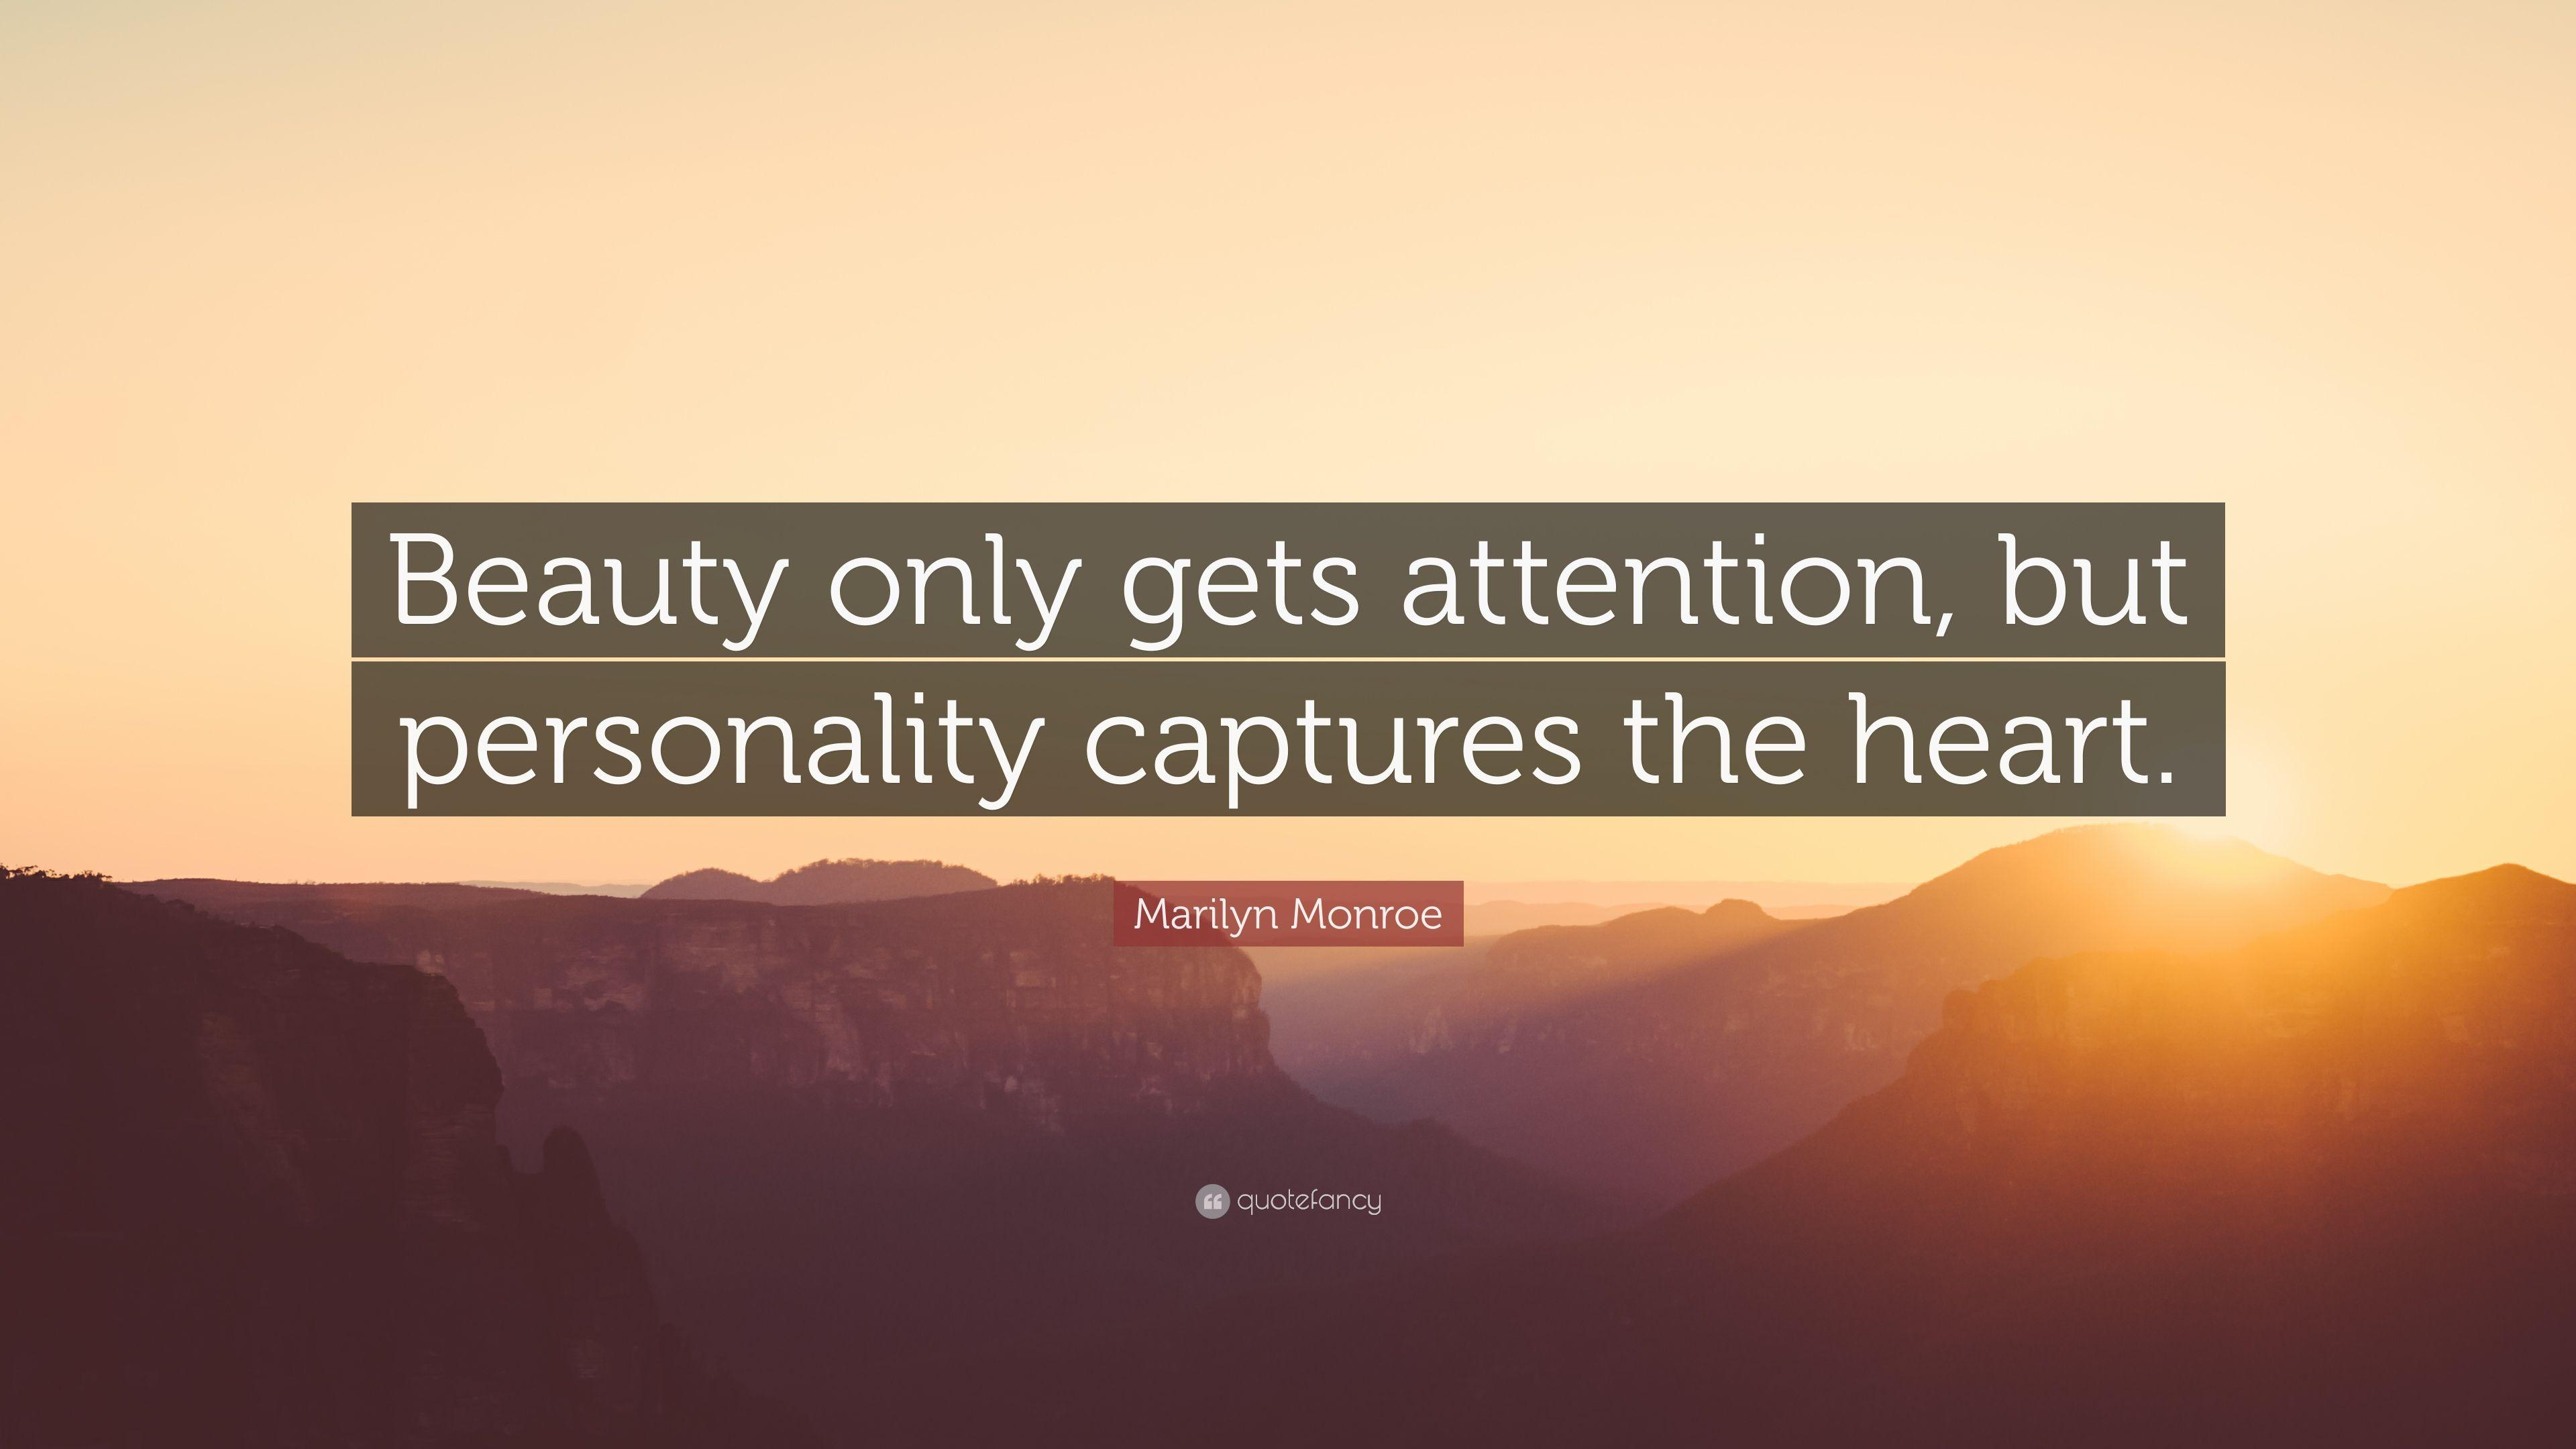 beauty quotes images - HD 3840×2160